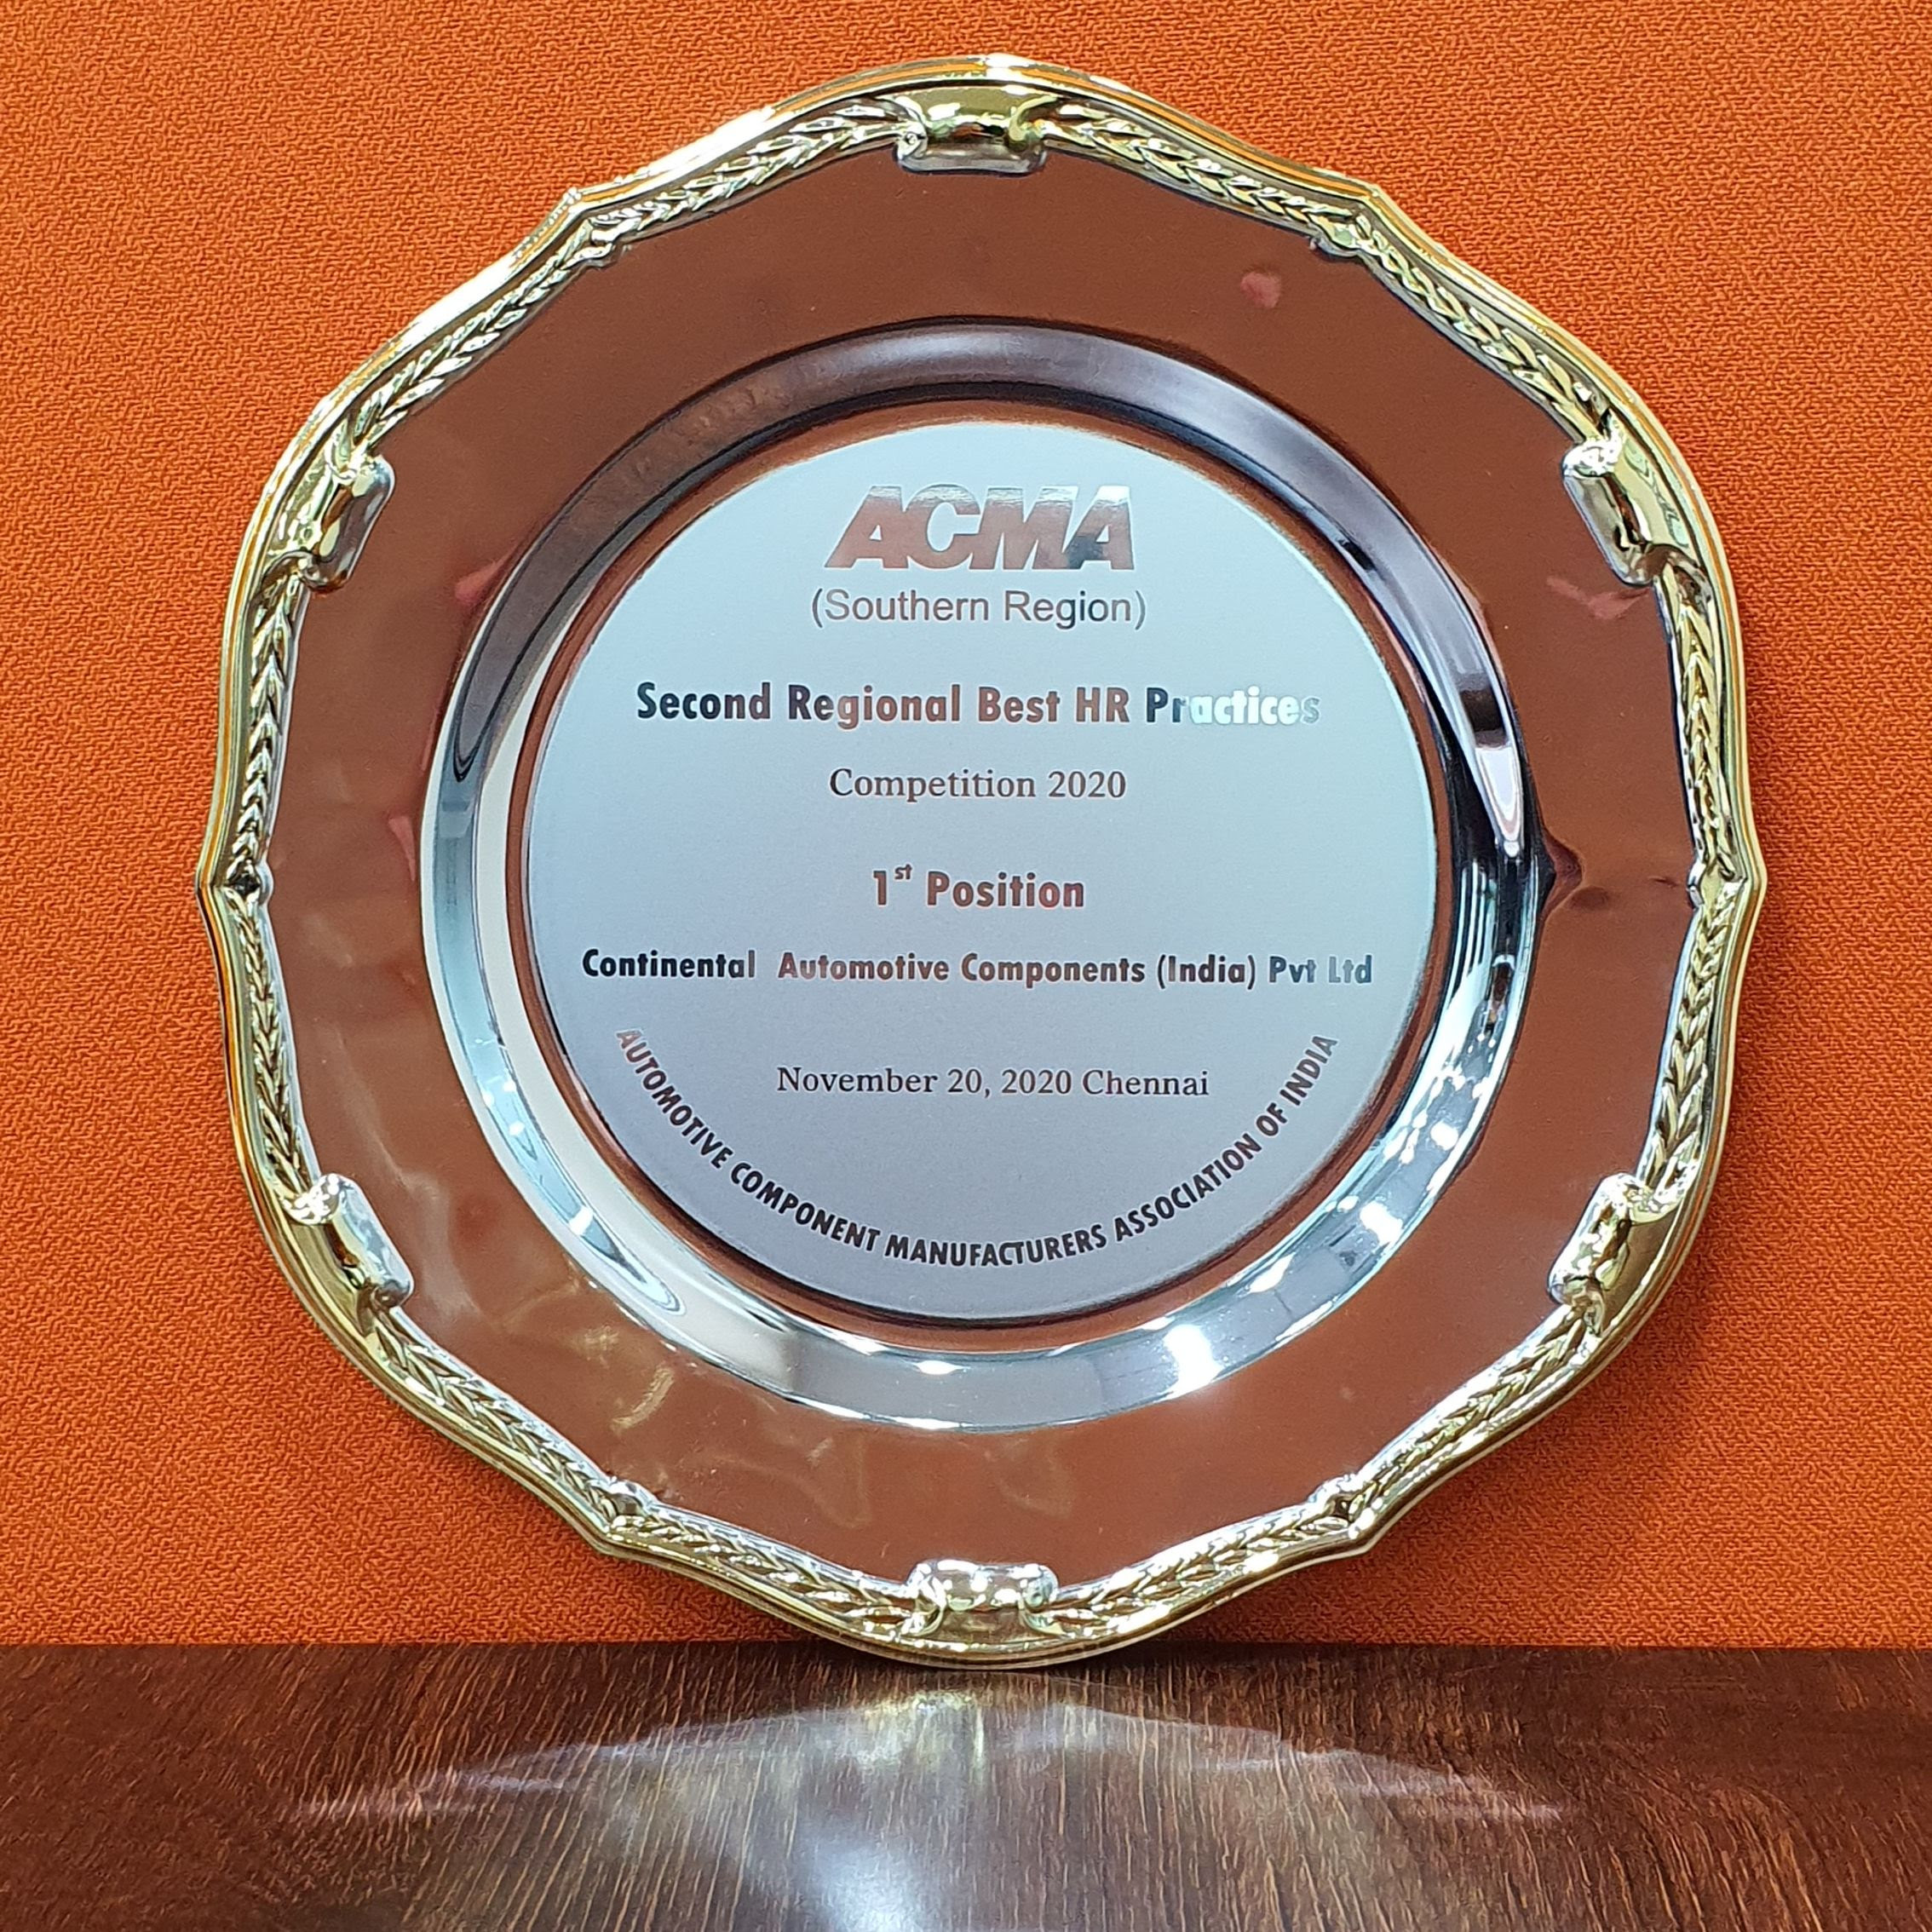 Continental India wins ACMA Excellence Award 2020 for Employee Engagement during COVID-19 Pandemic